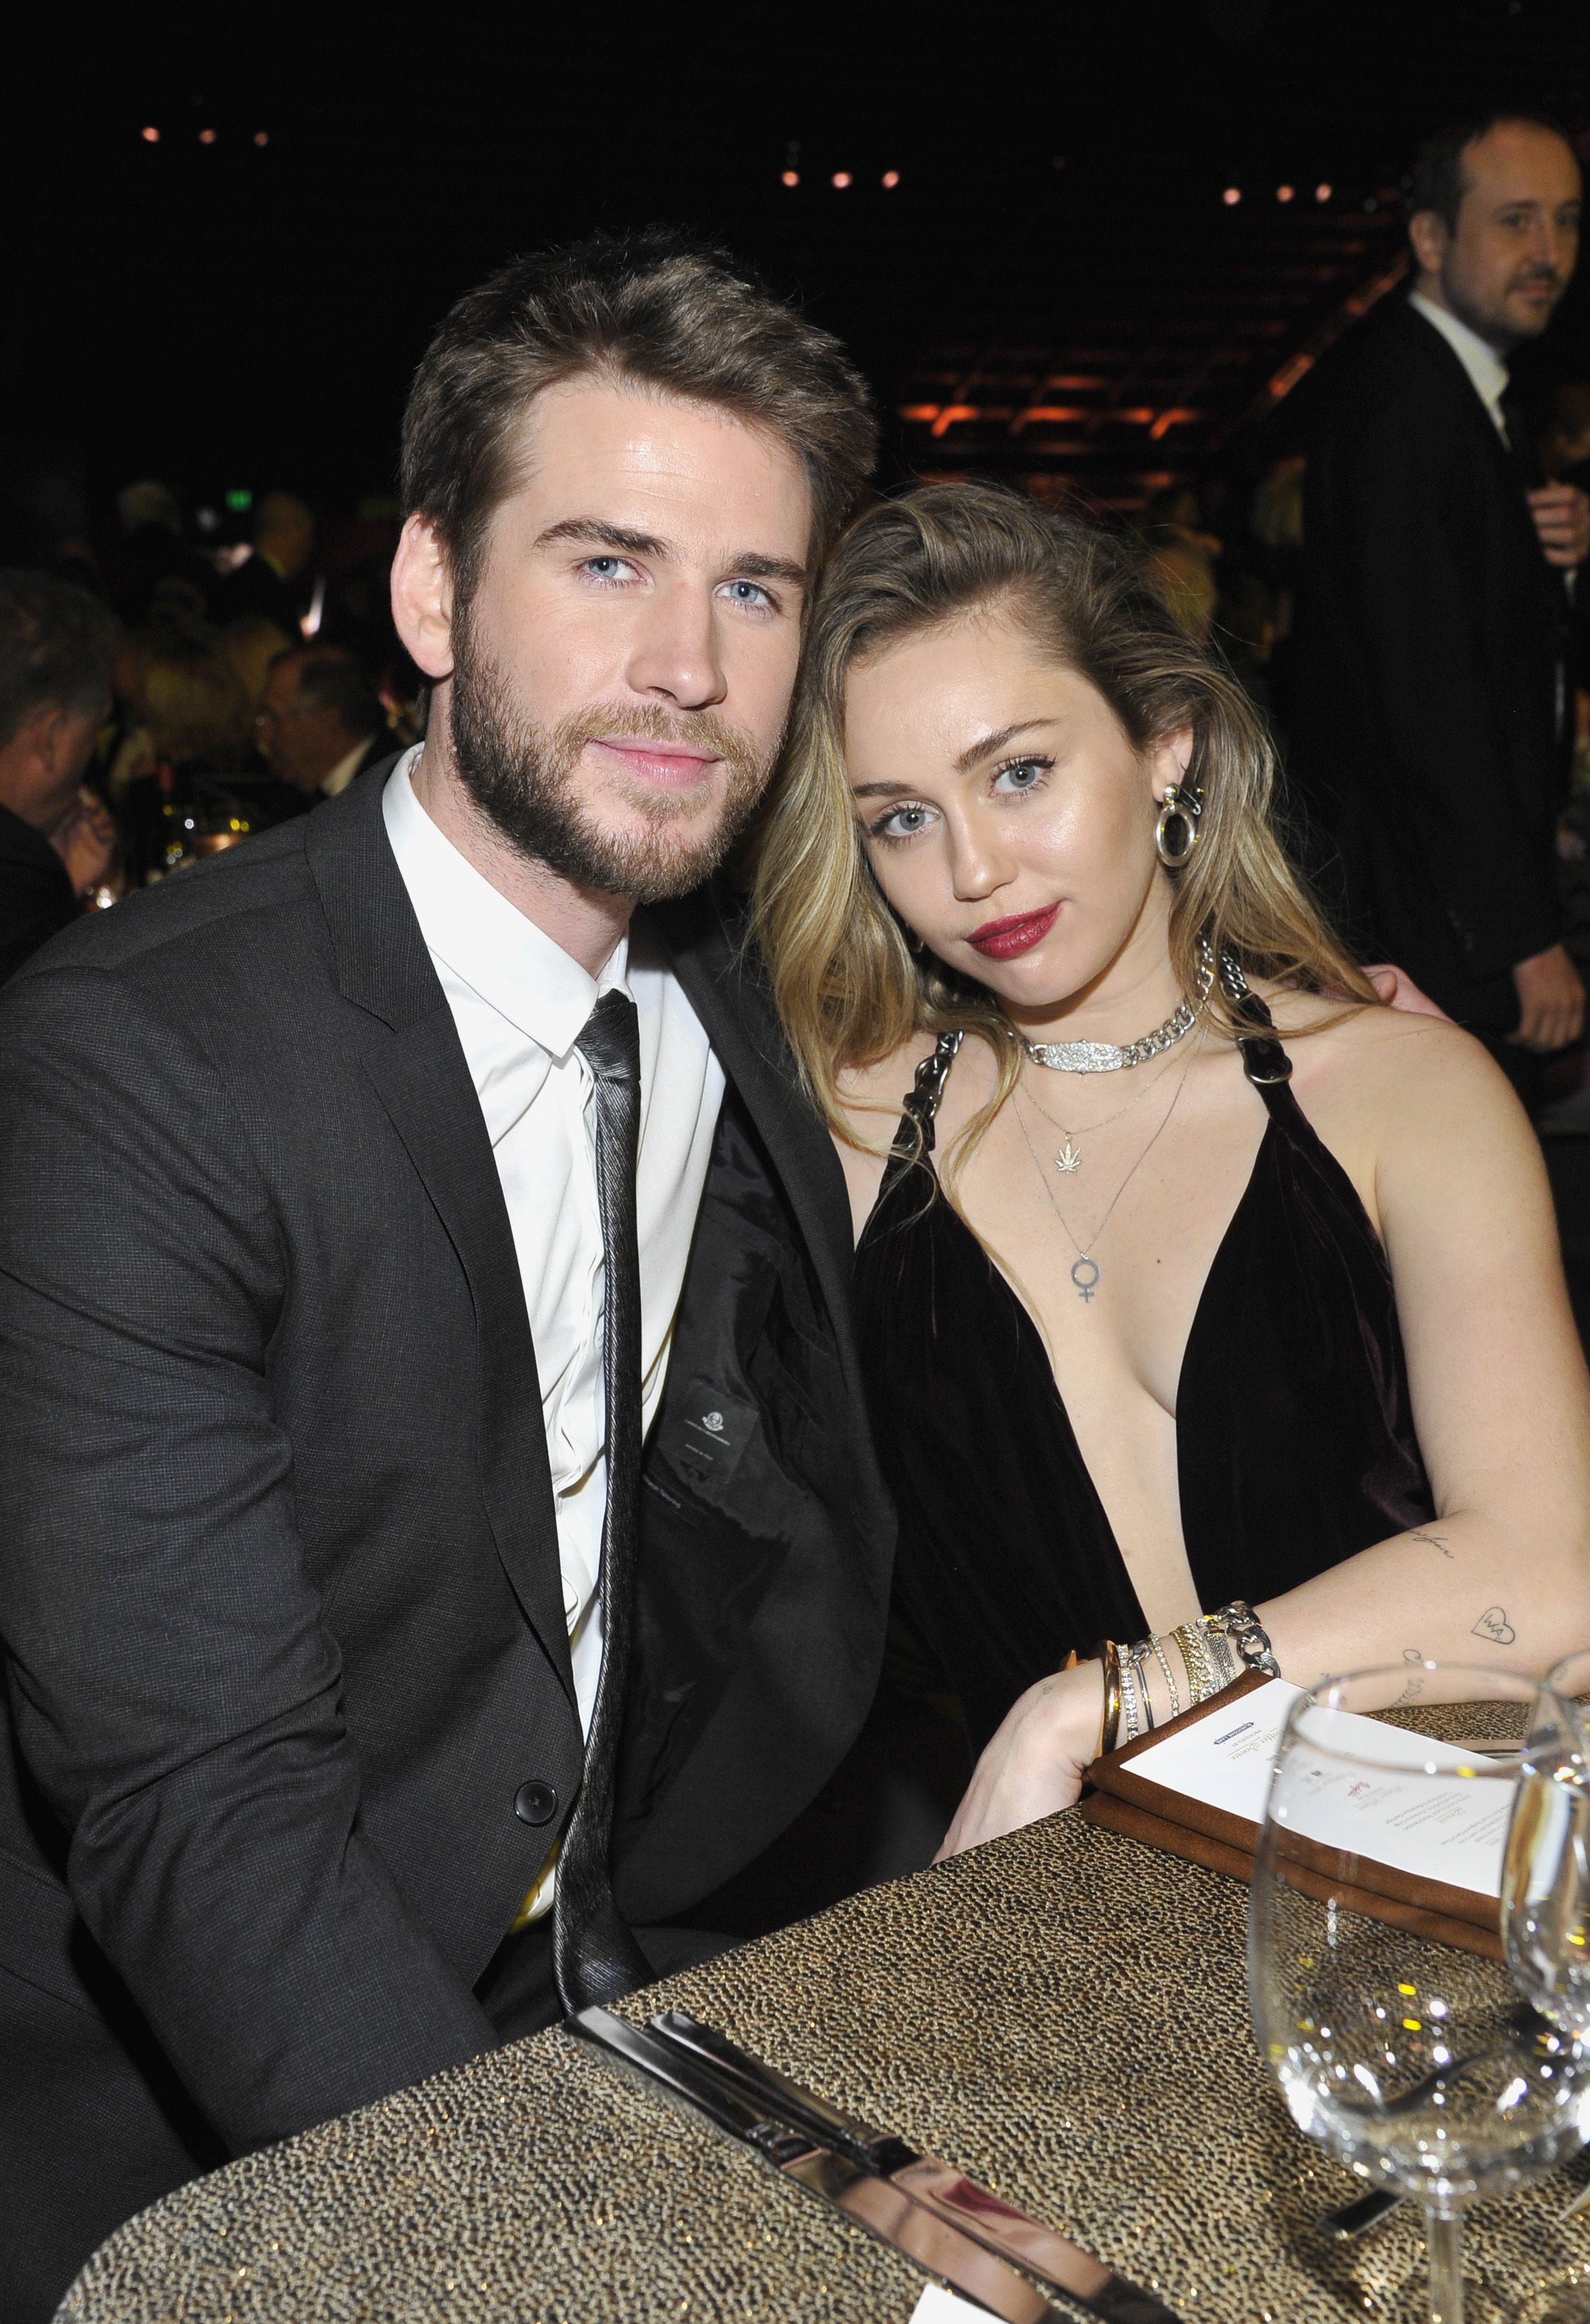 d7a71f357 Why Liam Hemsworth Wasn't with Miley Cyrus at the Grammy Awards